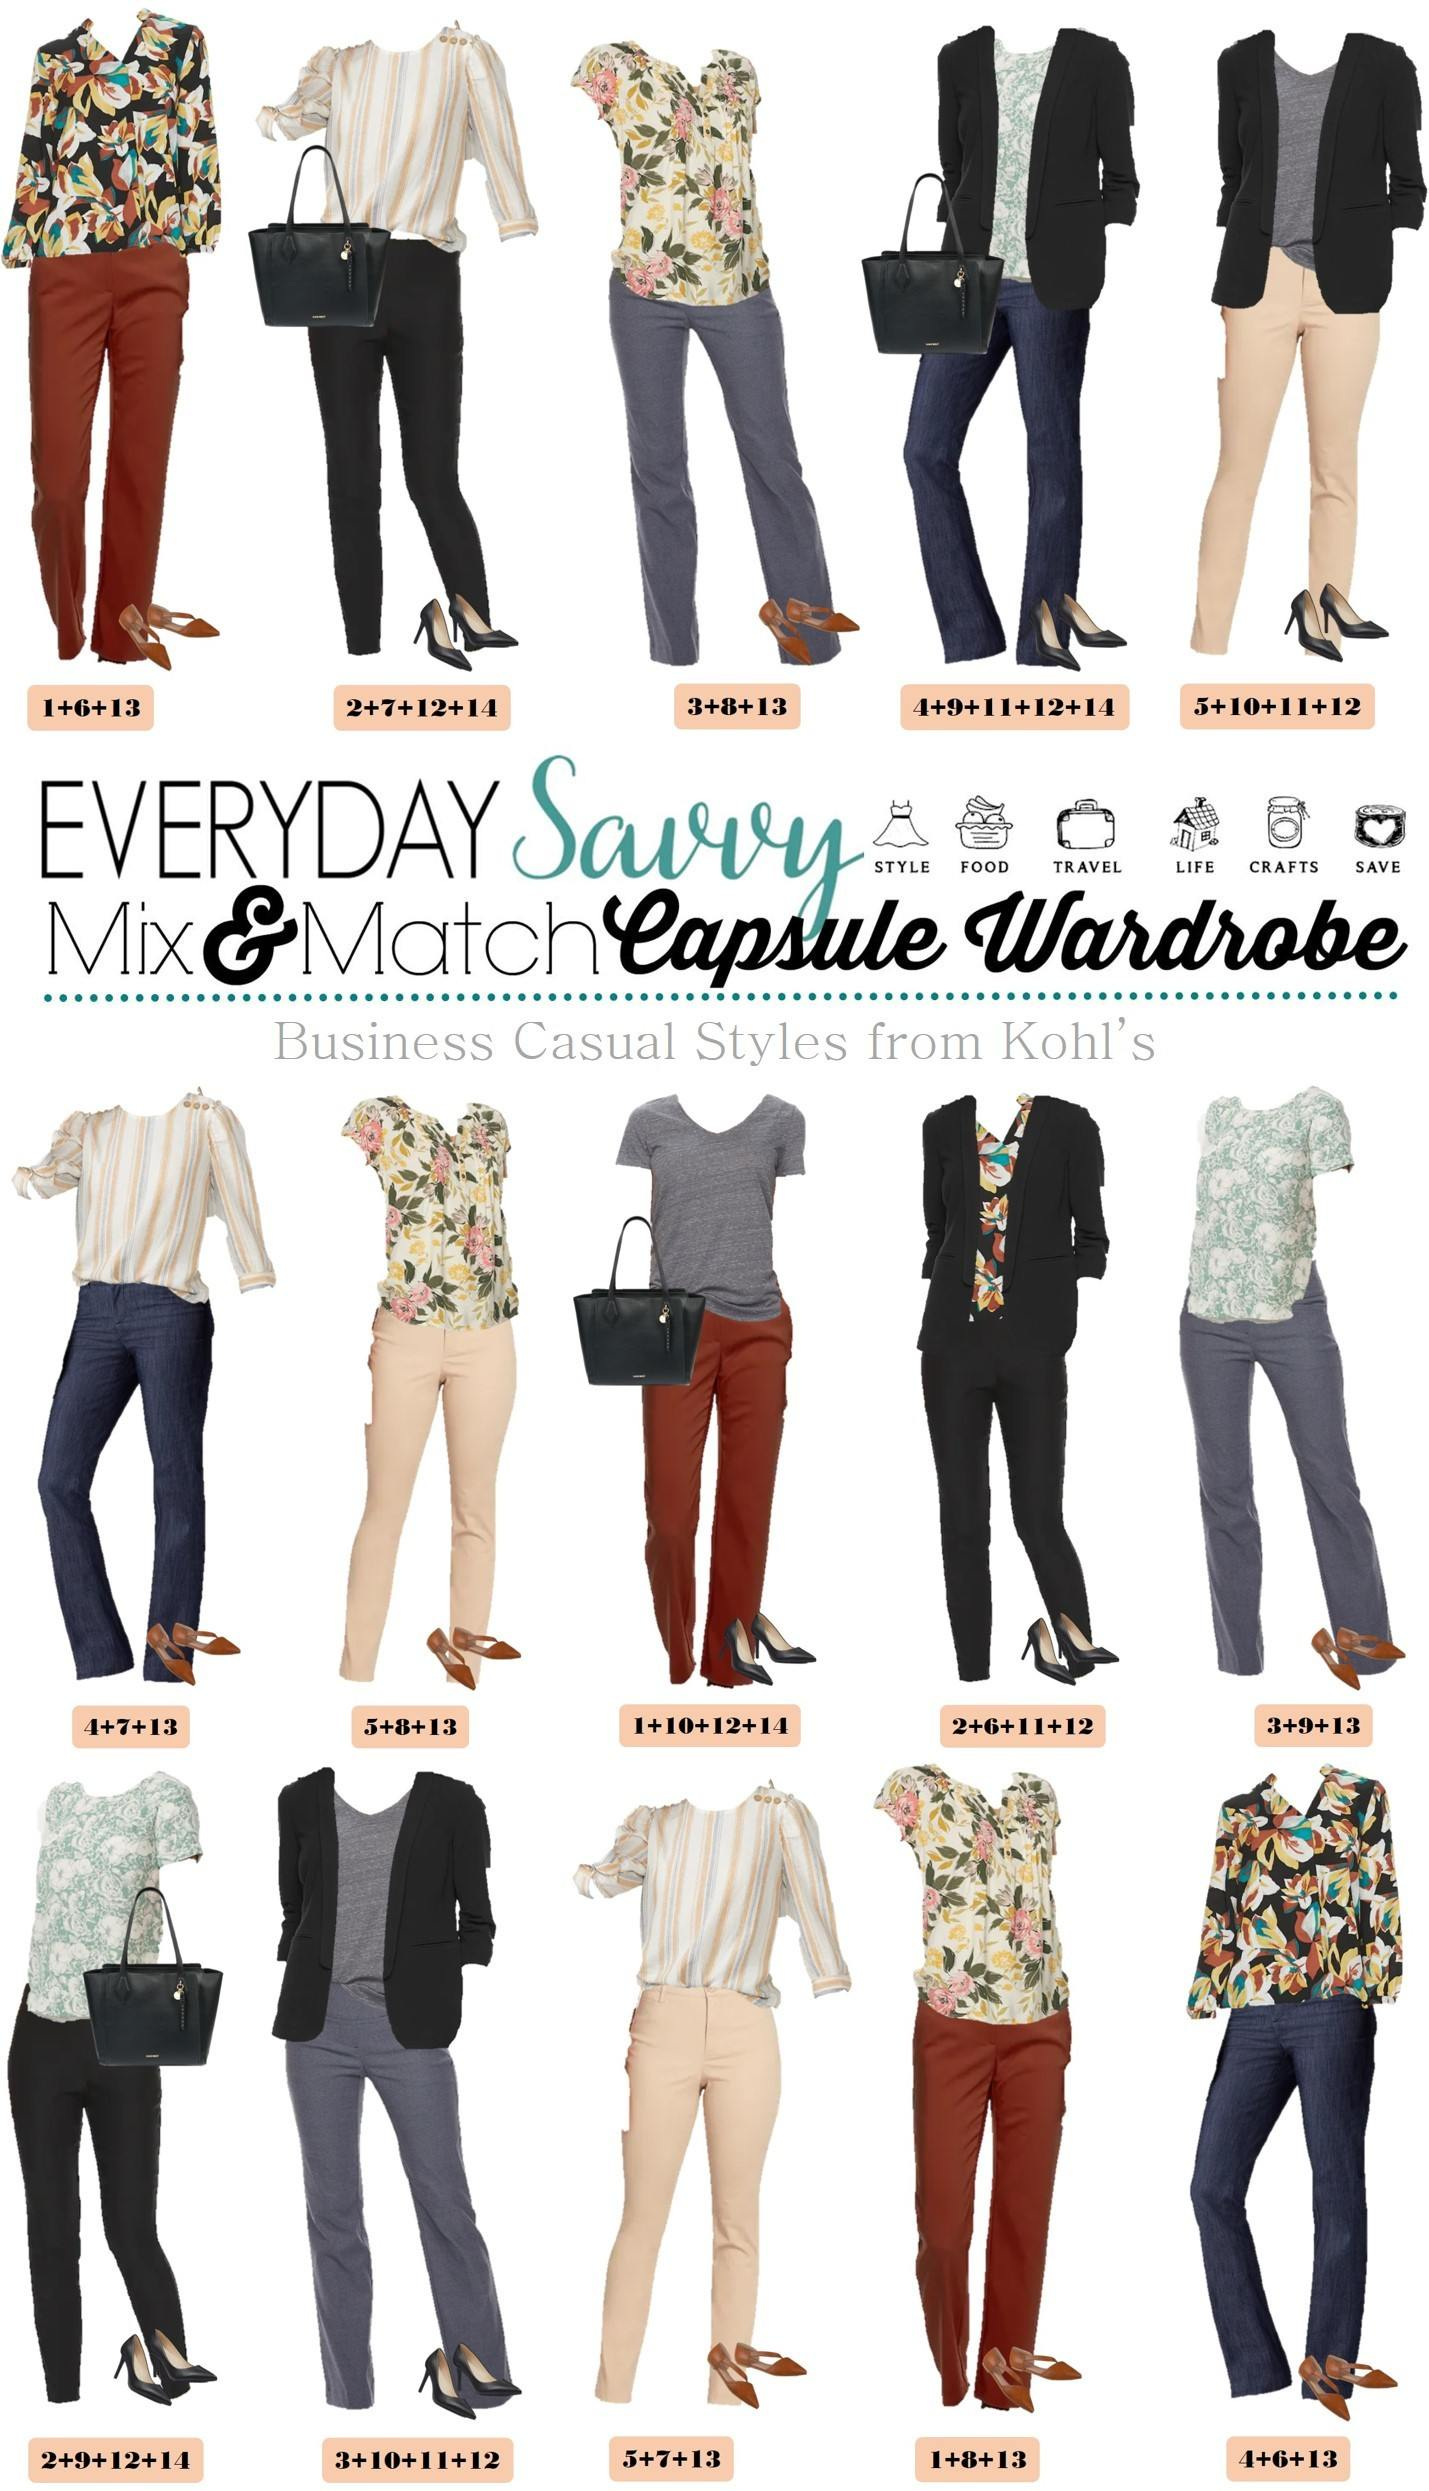 Business Casual Attire for women - capsule wardrobe of 15 mix and match outfits